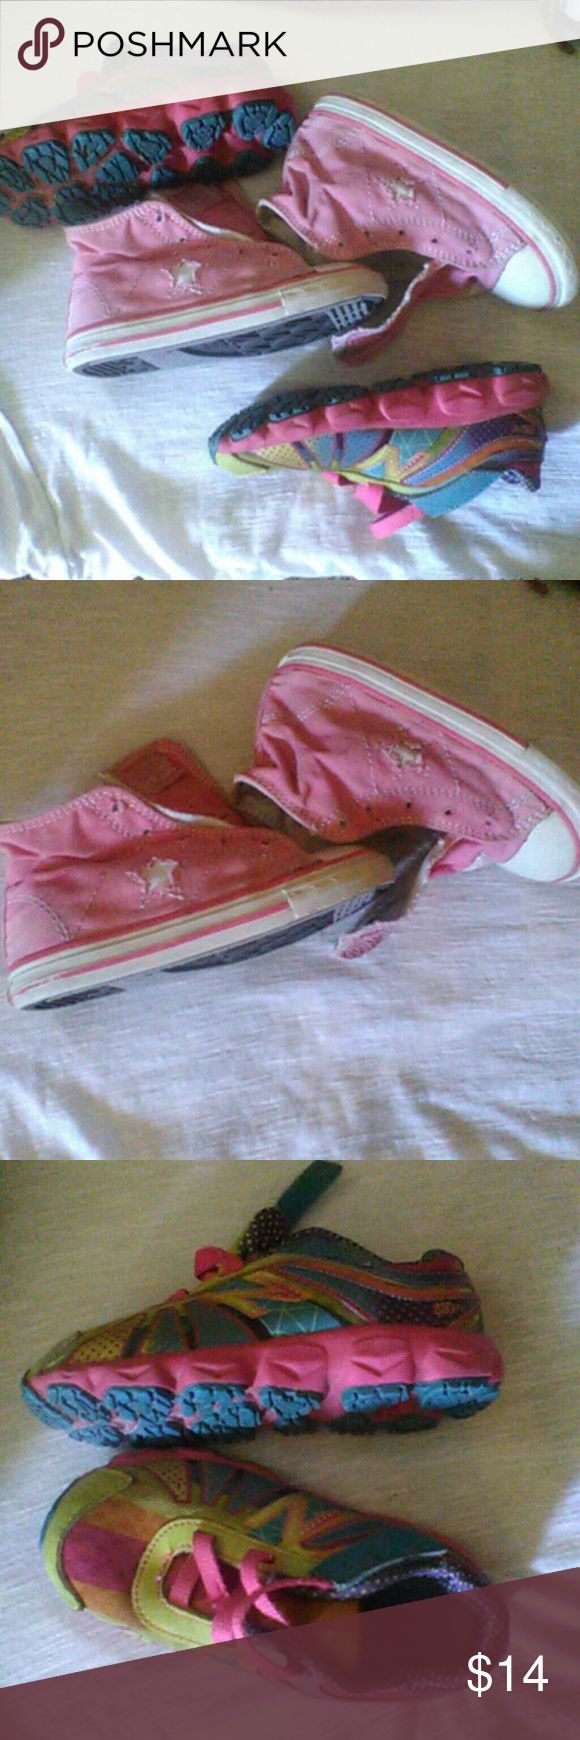 Converse high tops&New Balance shoes Size 8pink Converse all stars and Multi color  New Balance size 8.5 Converse Shoes Sneakers